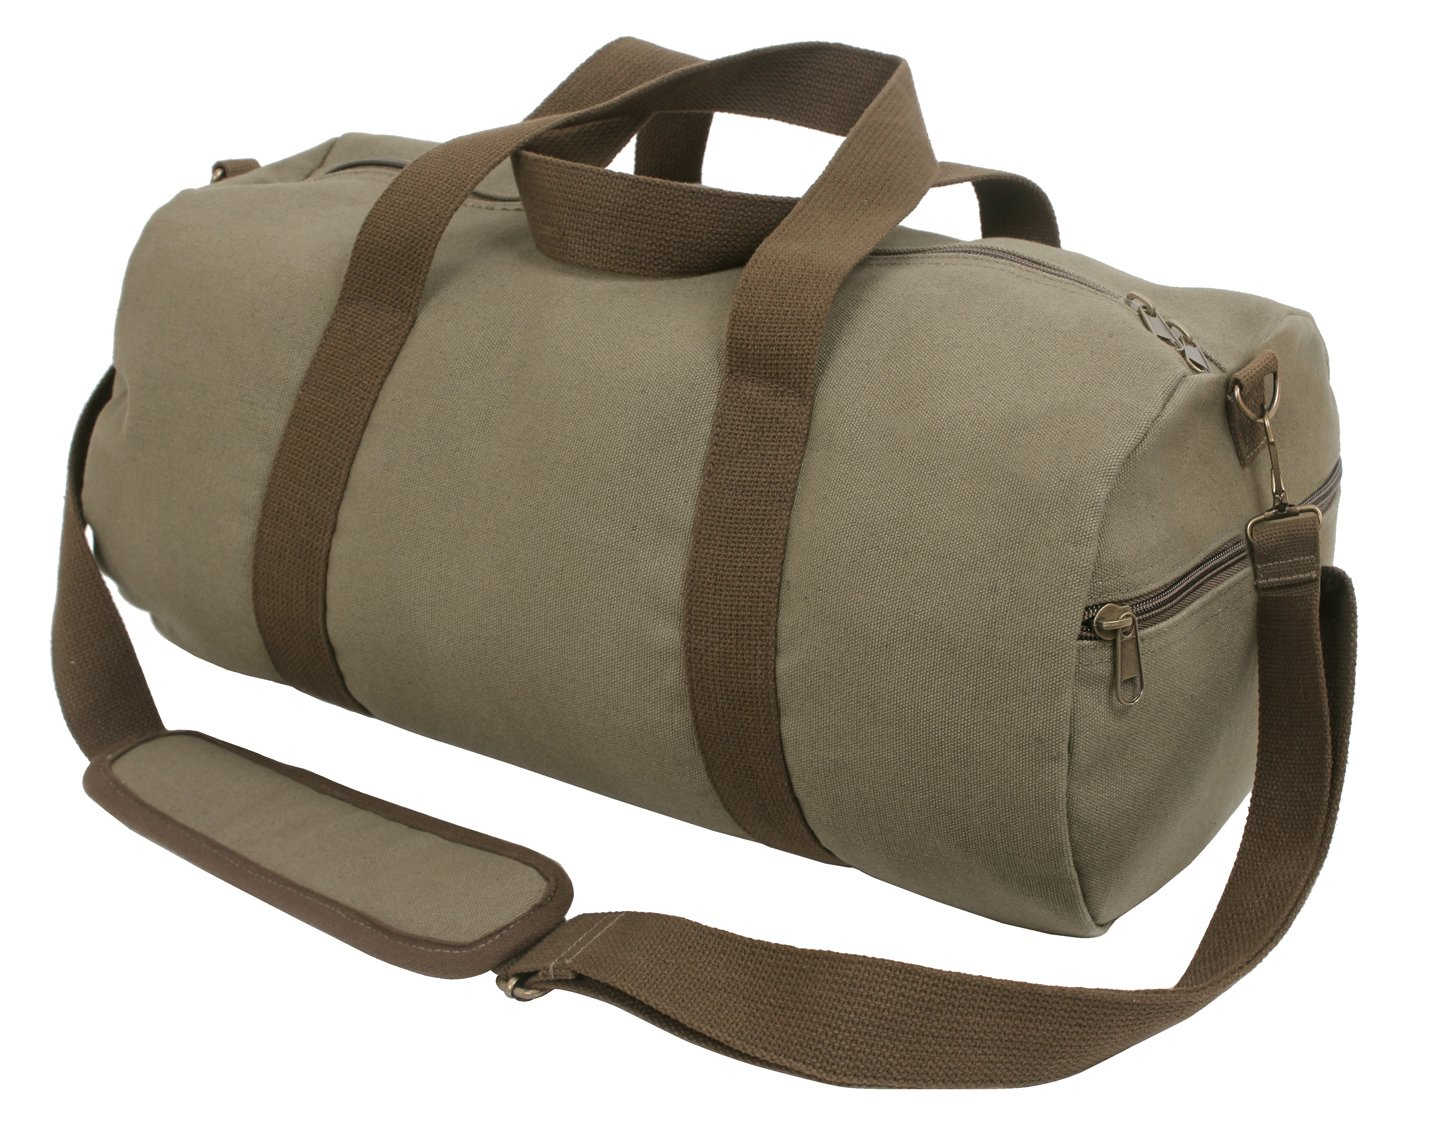 Rothco Two-Tone Canvas Shoulder Duffle Bag - Vintage Olive with Brown Straps